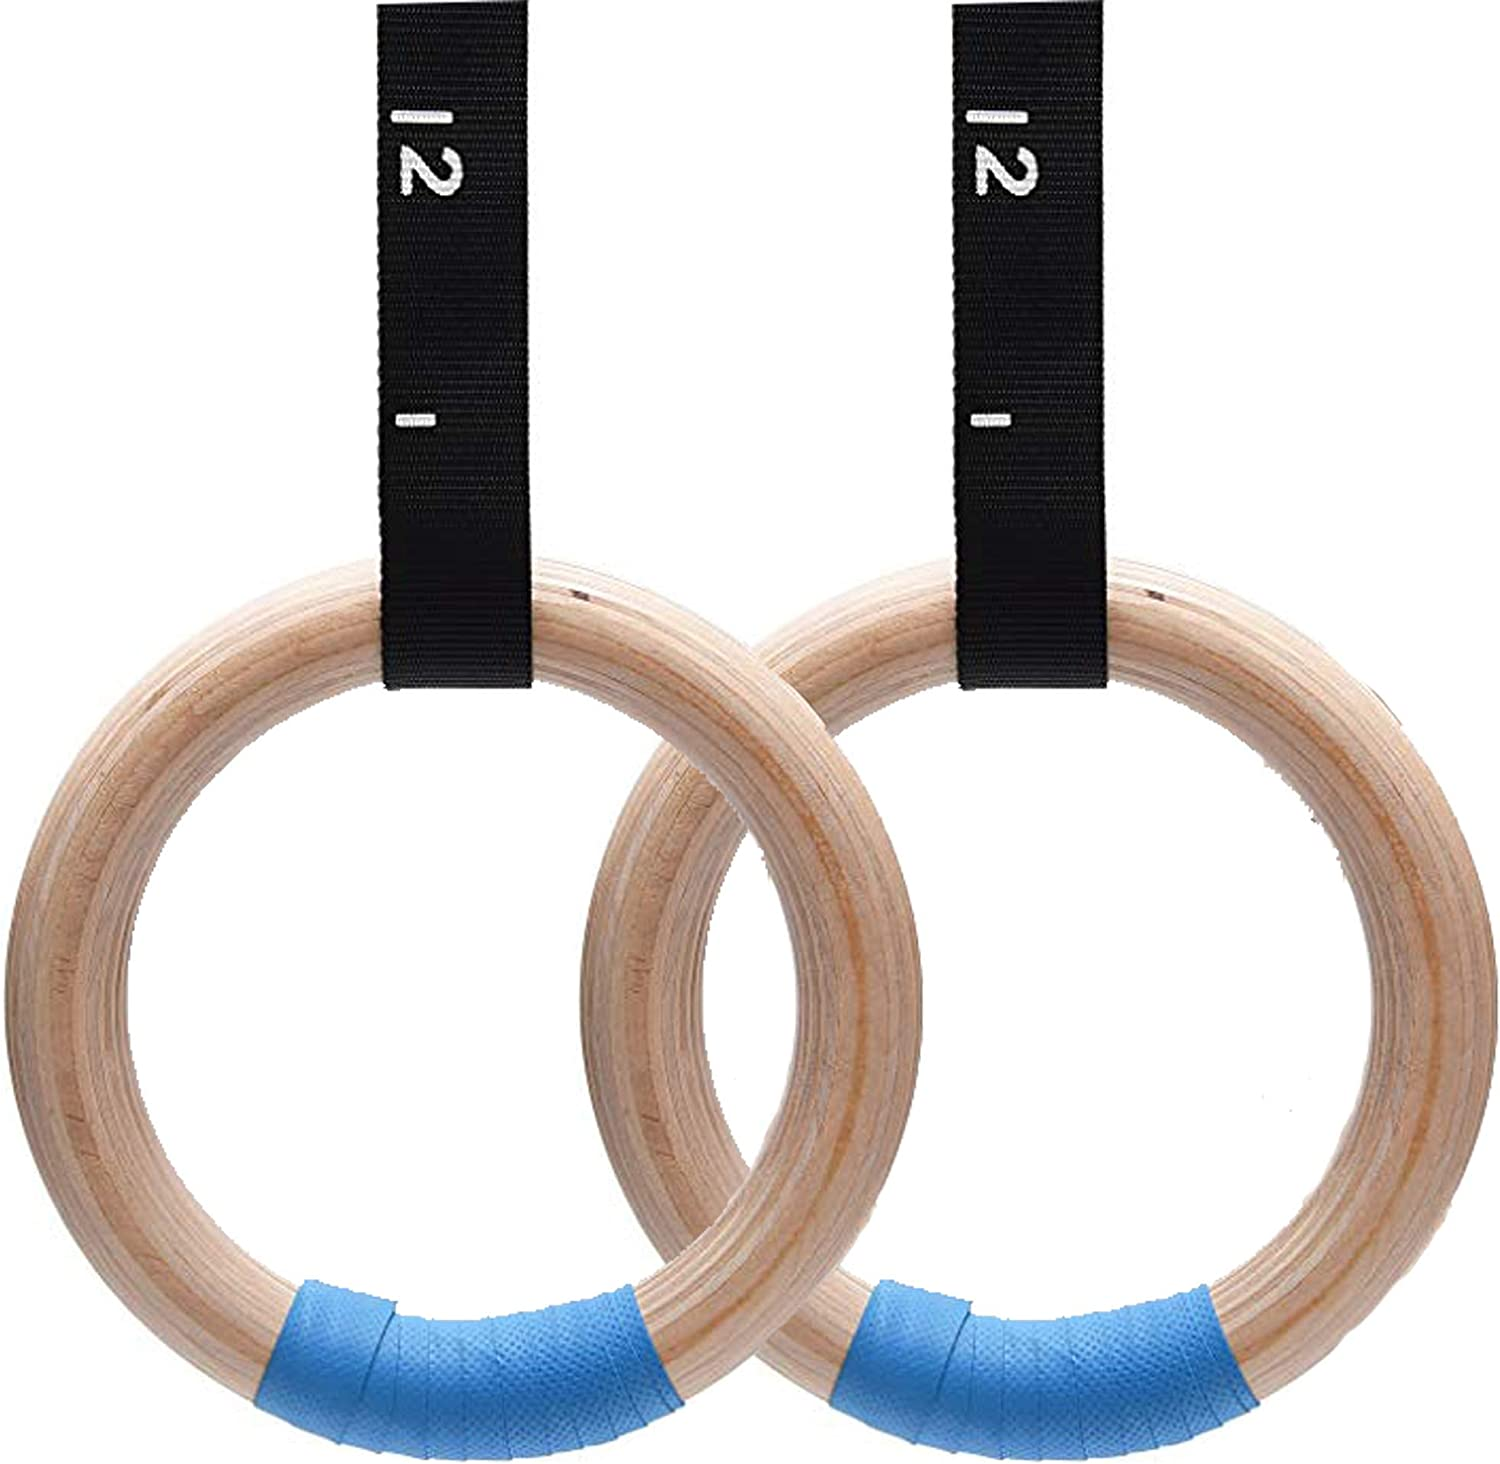 Gymnastic rings Calisthenics rings 28 mm thick Wooden HEAVY DUTY safety feature